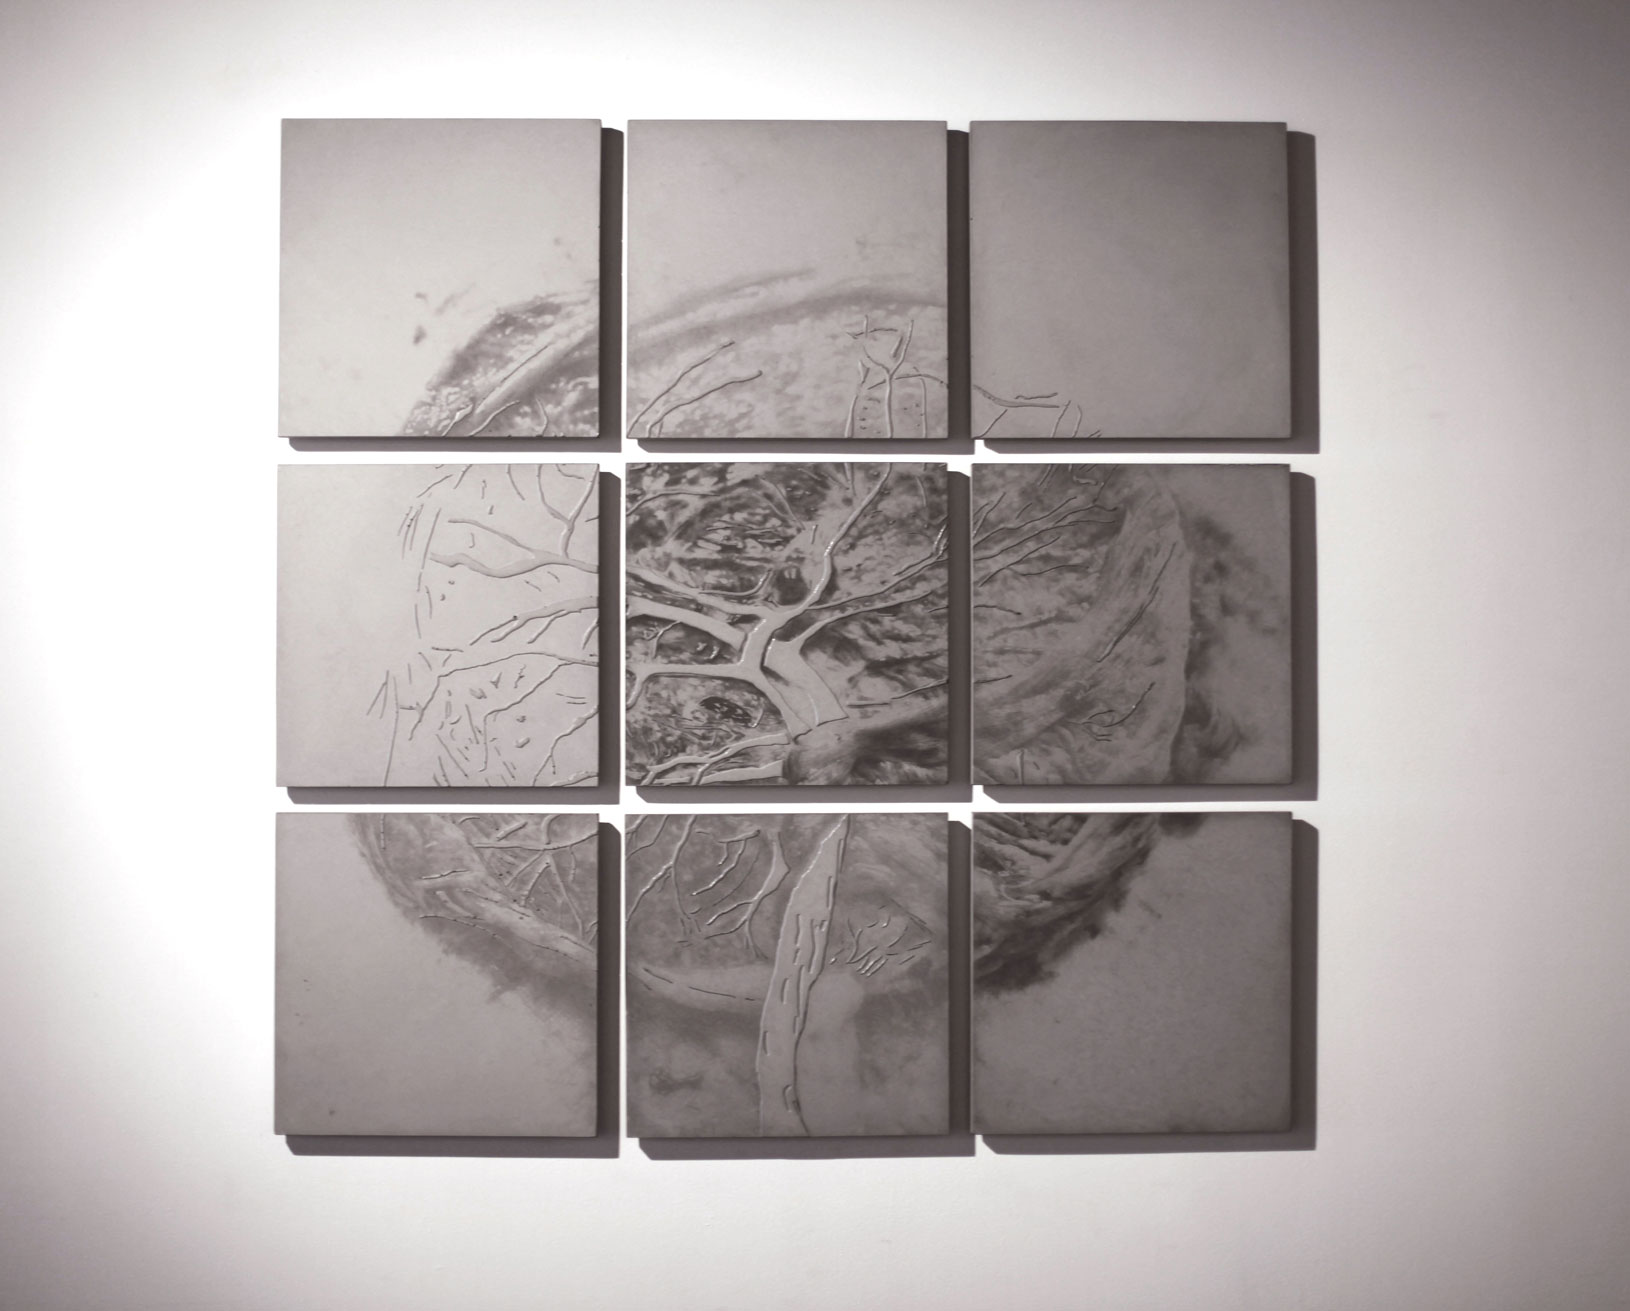 Wall sculptures of 9 concrete relief tiles in a grid, forming a placenta.